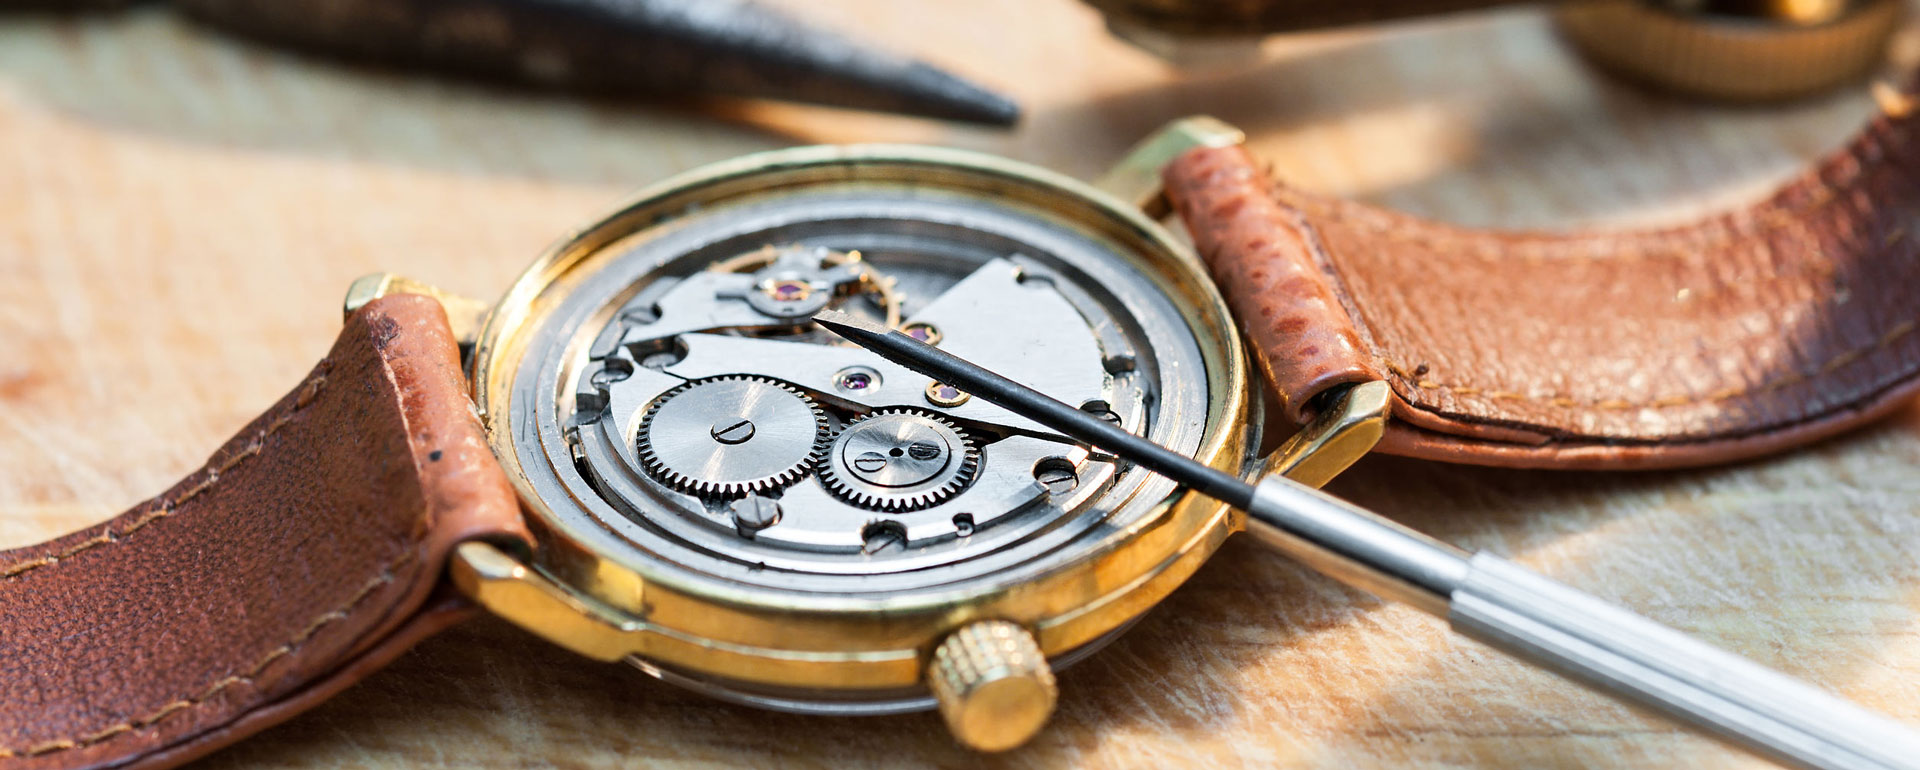 watch repair company